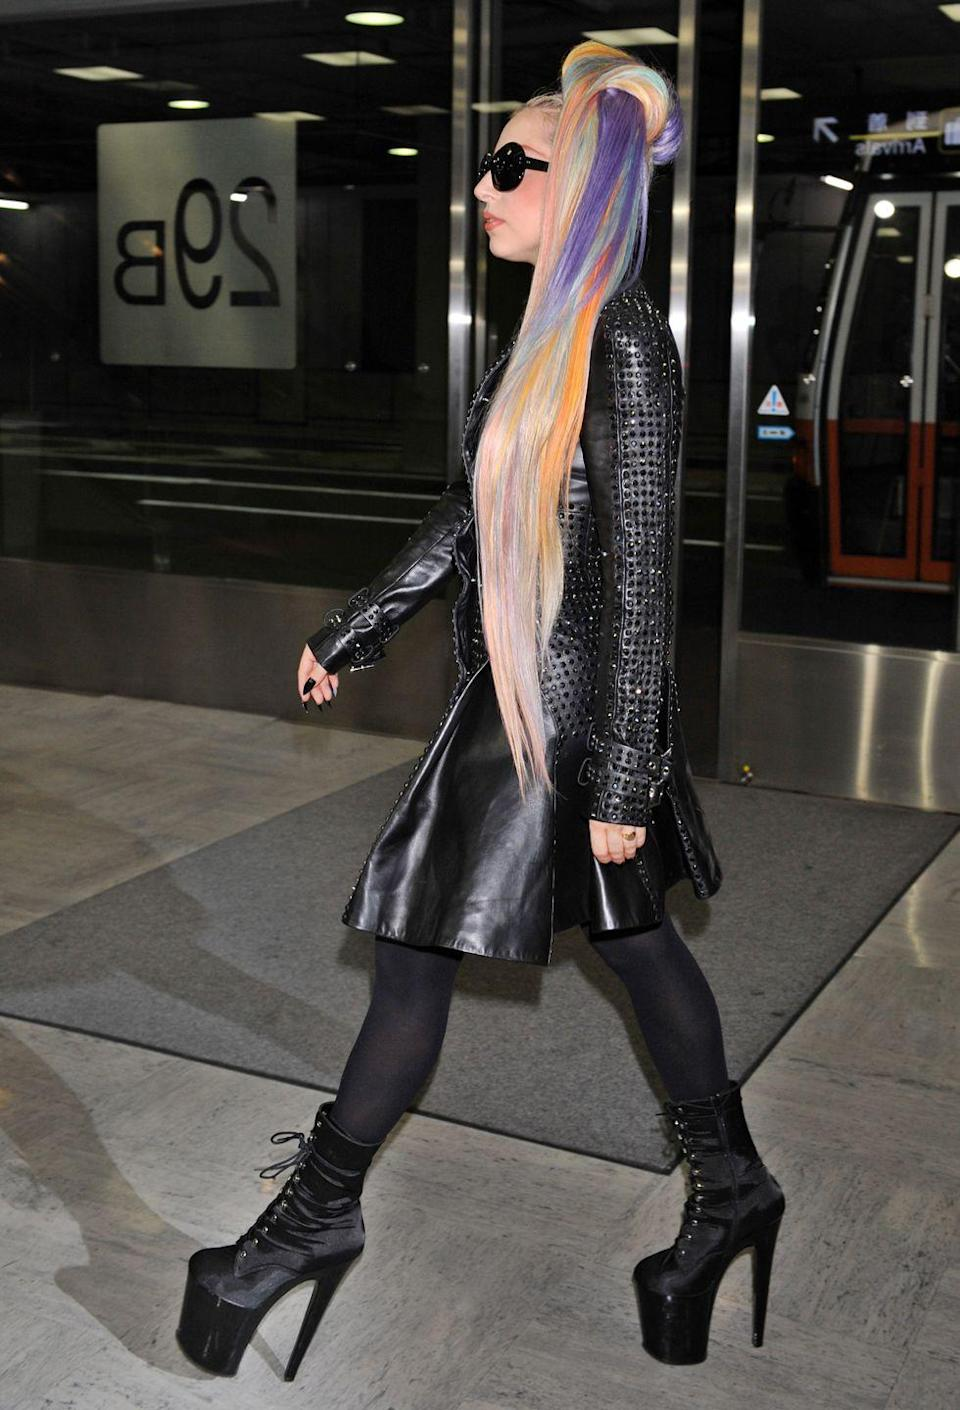 <p><strong>Lady Gaga, 2012: </strong>At Tokyo's Narita airport in 2012. Never not wearing ridiculous airport shoes. </p>